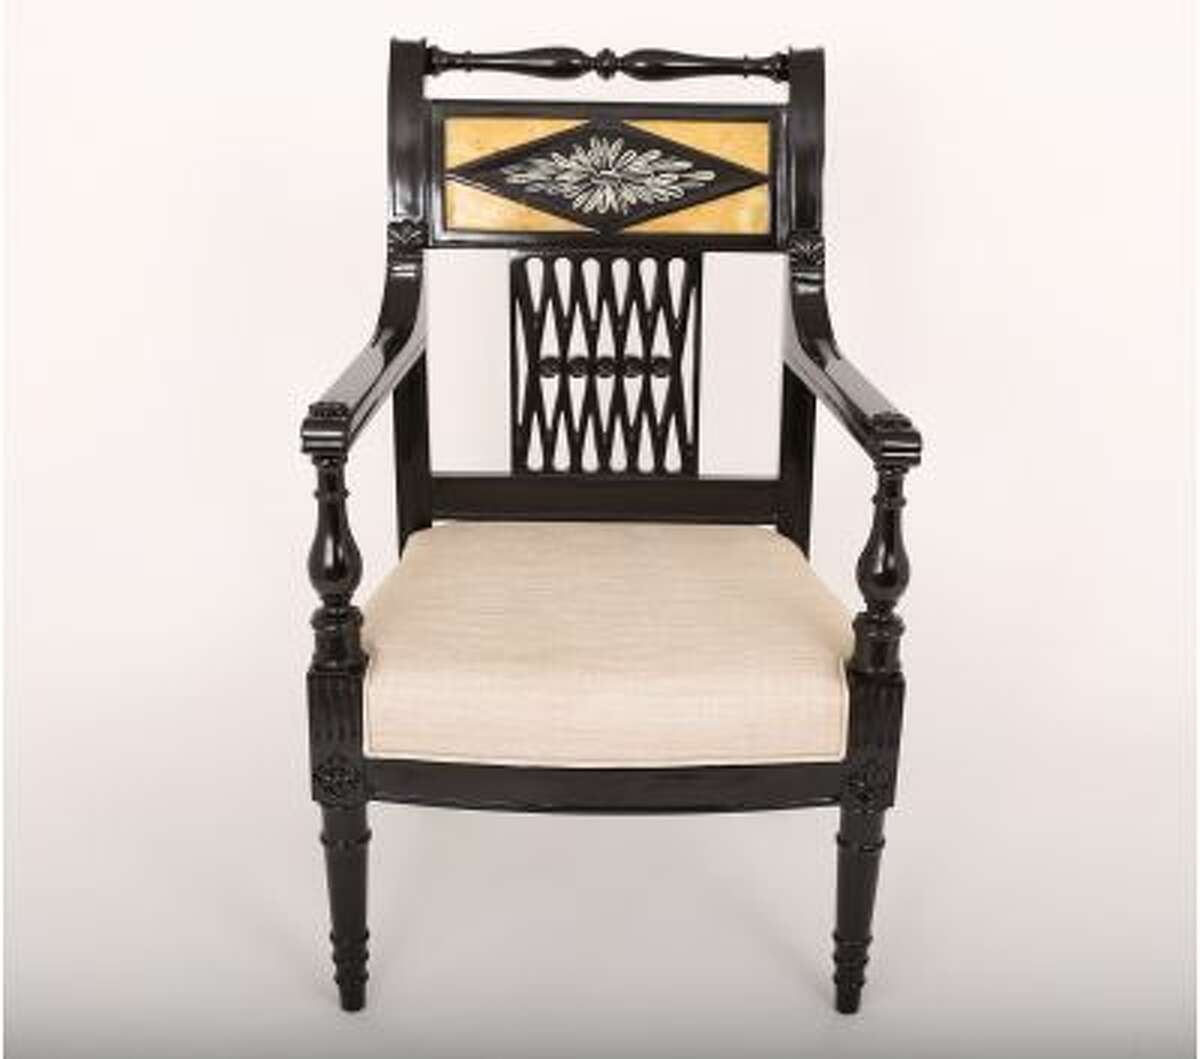 This hand-carved chair with a black ebony finish is among the items for sale on buydesignexchange.com.